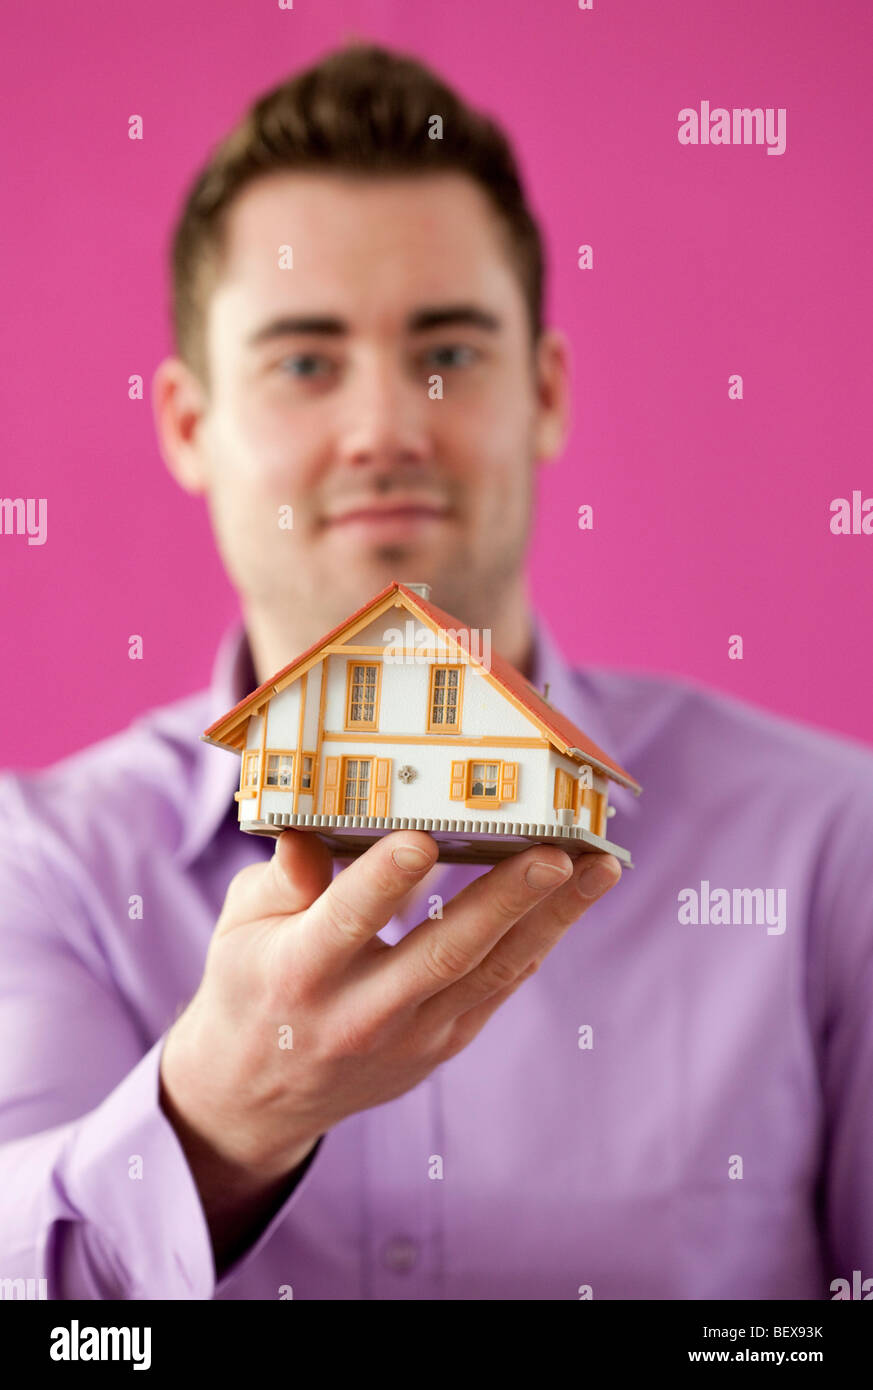 Young man holding a little house. - Stock Image